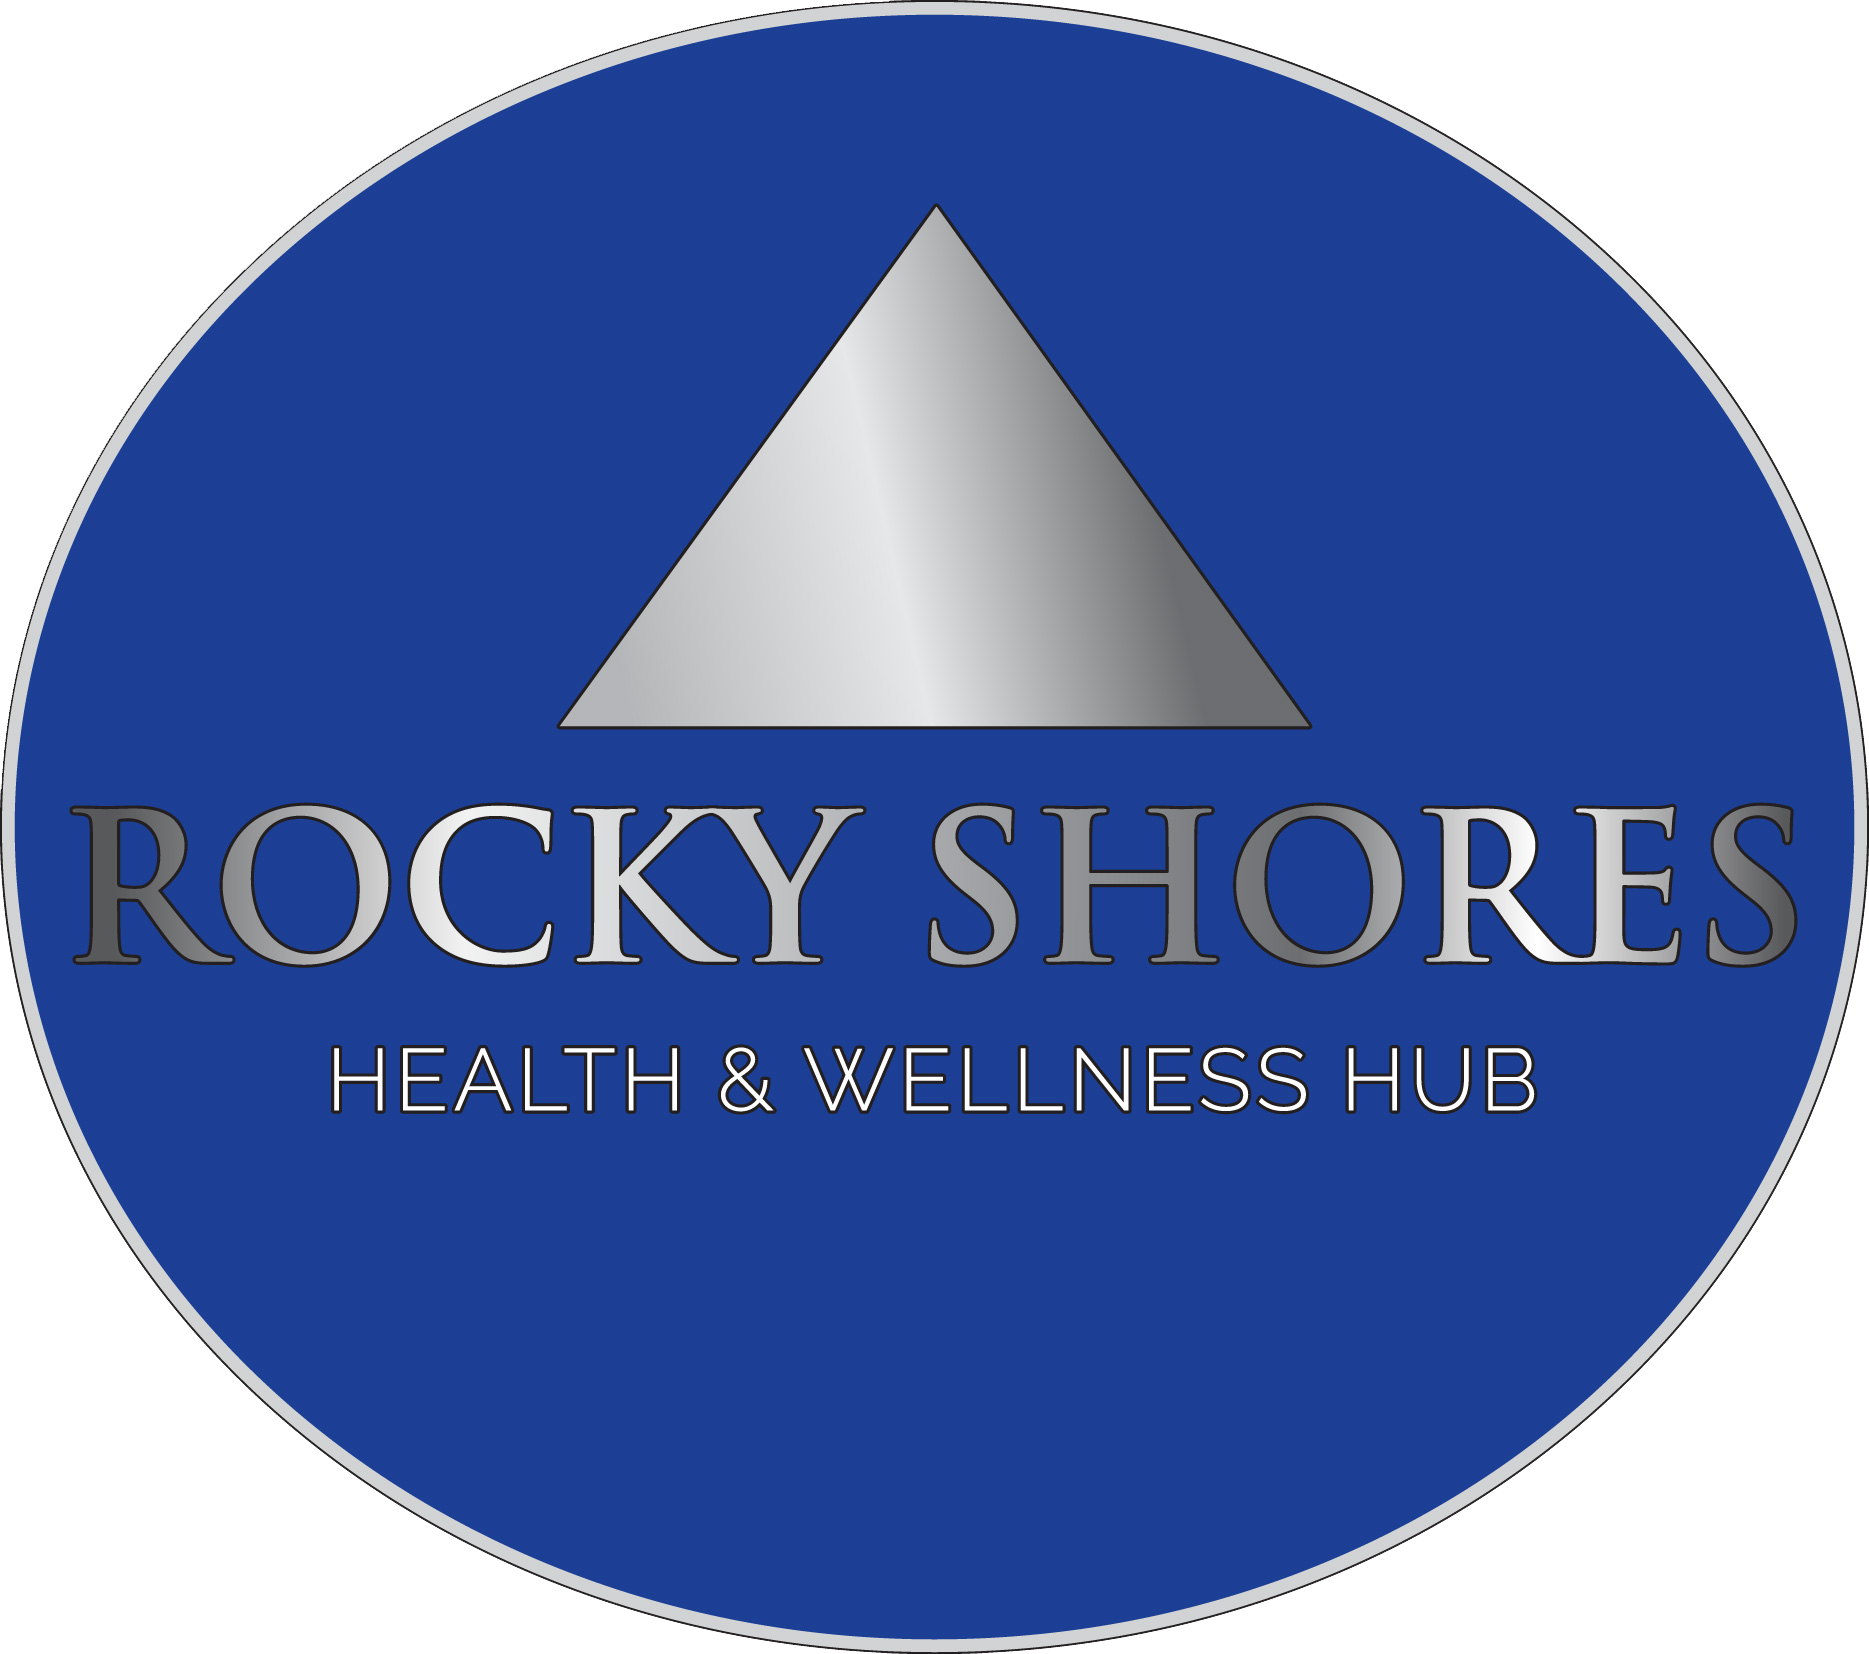 Rocky Shores Health & Wellness